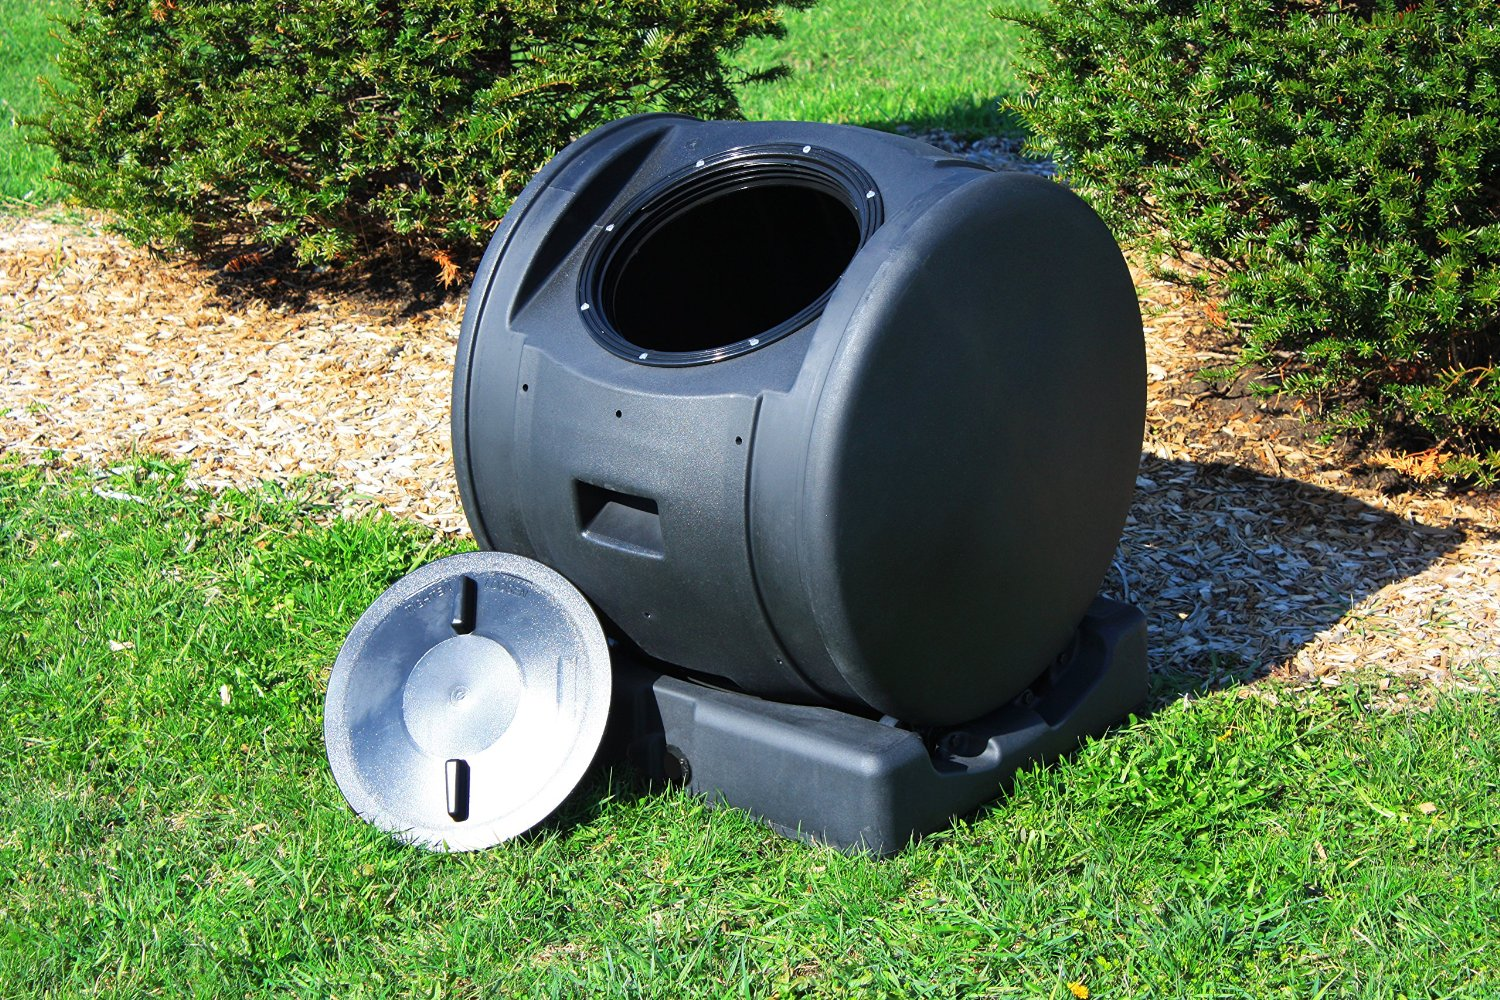 best compost tumblers thrifty outdoors manthrifty outdoors man